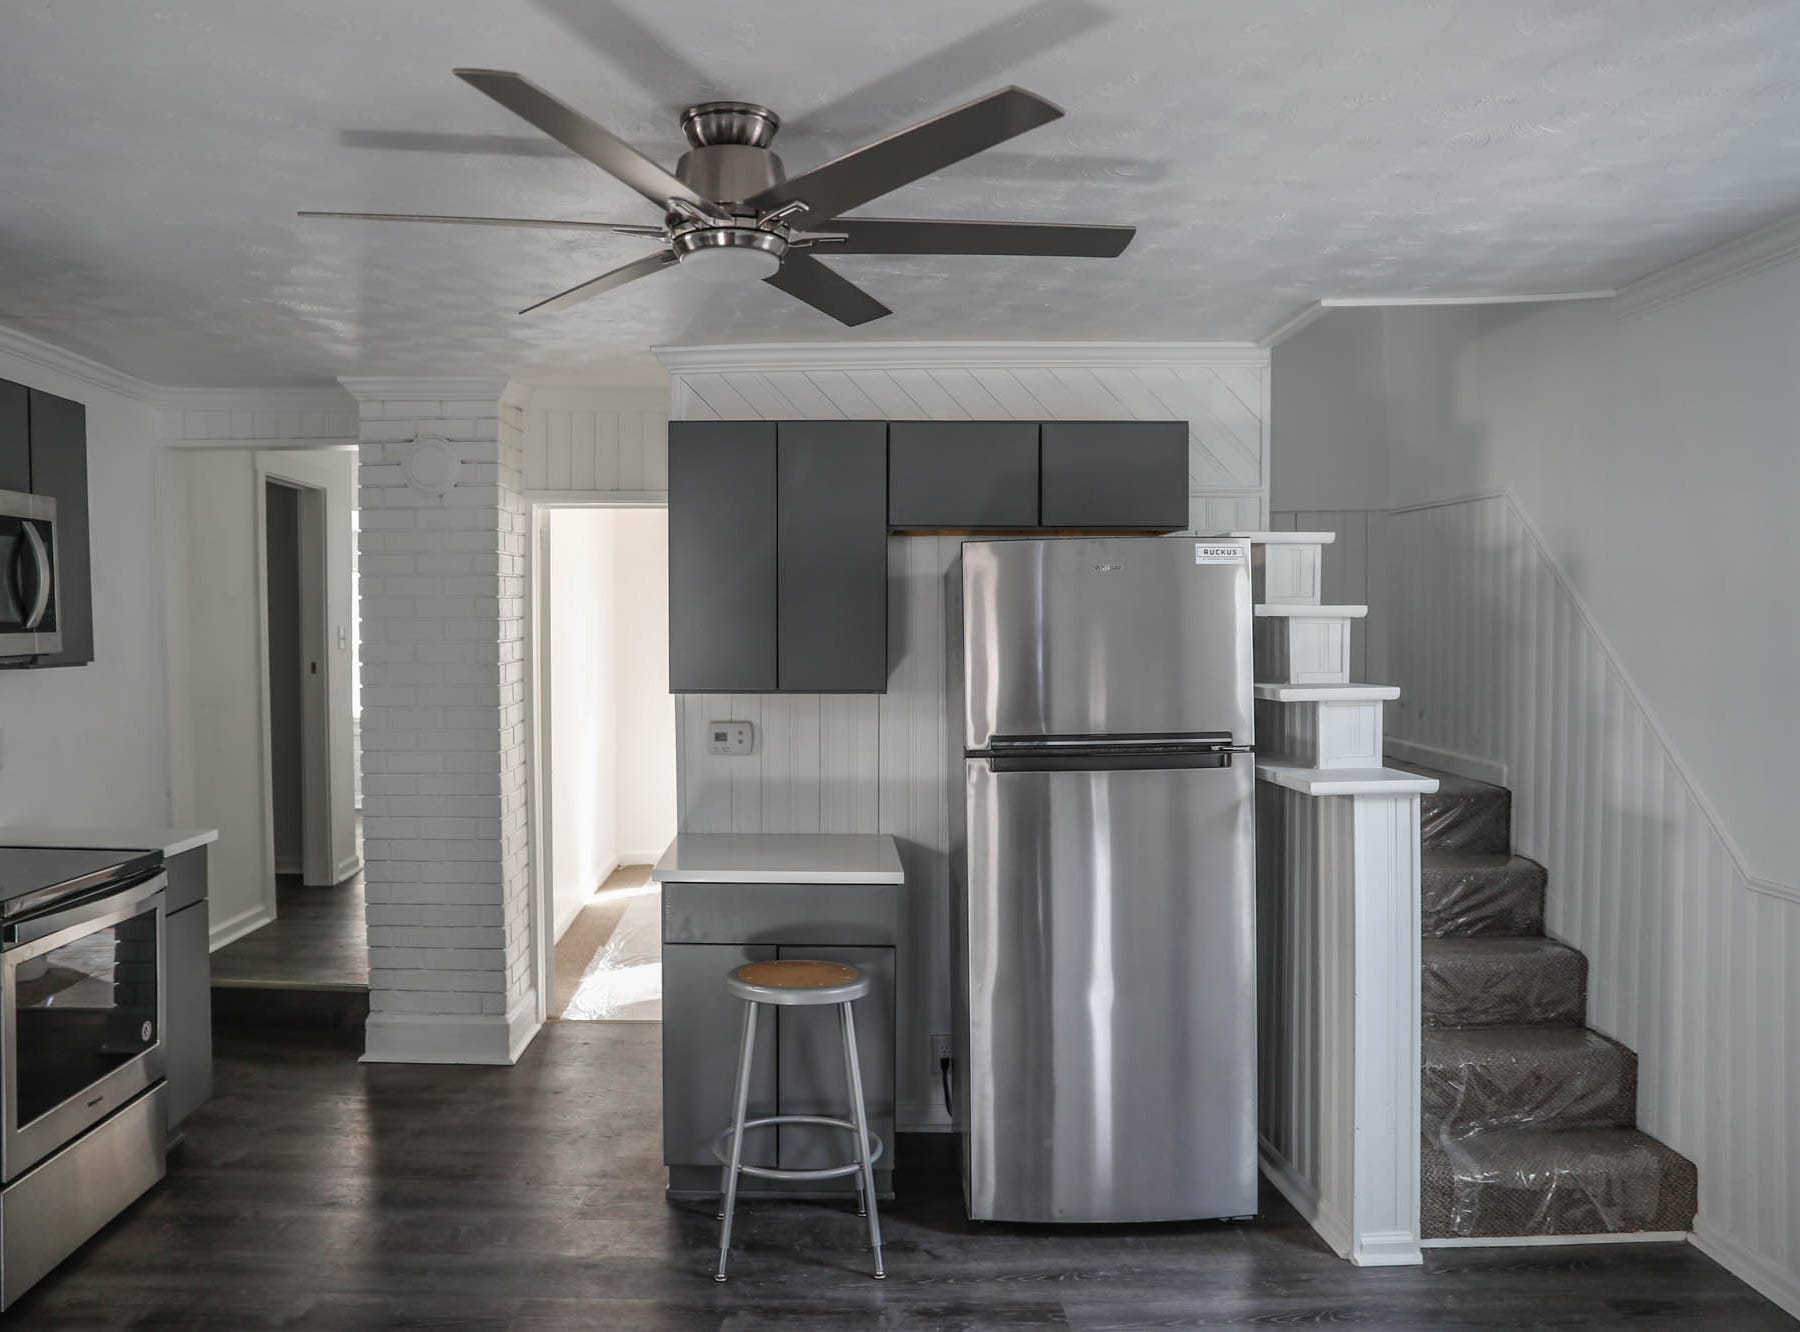 A newly remodeled home on Cruft St., affectionally known as the 'fish tank house' because the living room once featured an in-wall fish tank, now features a modern kitchen and is part of the Big Car Collaborative and Riley Area Development affordable artist home ownership program on the near south side of Indianapolis on Wednesday, March 6, 2019.  The goal of the Artist and Public Life Residency (APLR), will be to provide artists with home ownership while they work and collaborate with the greater community.